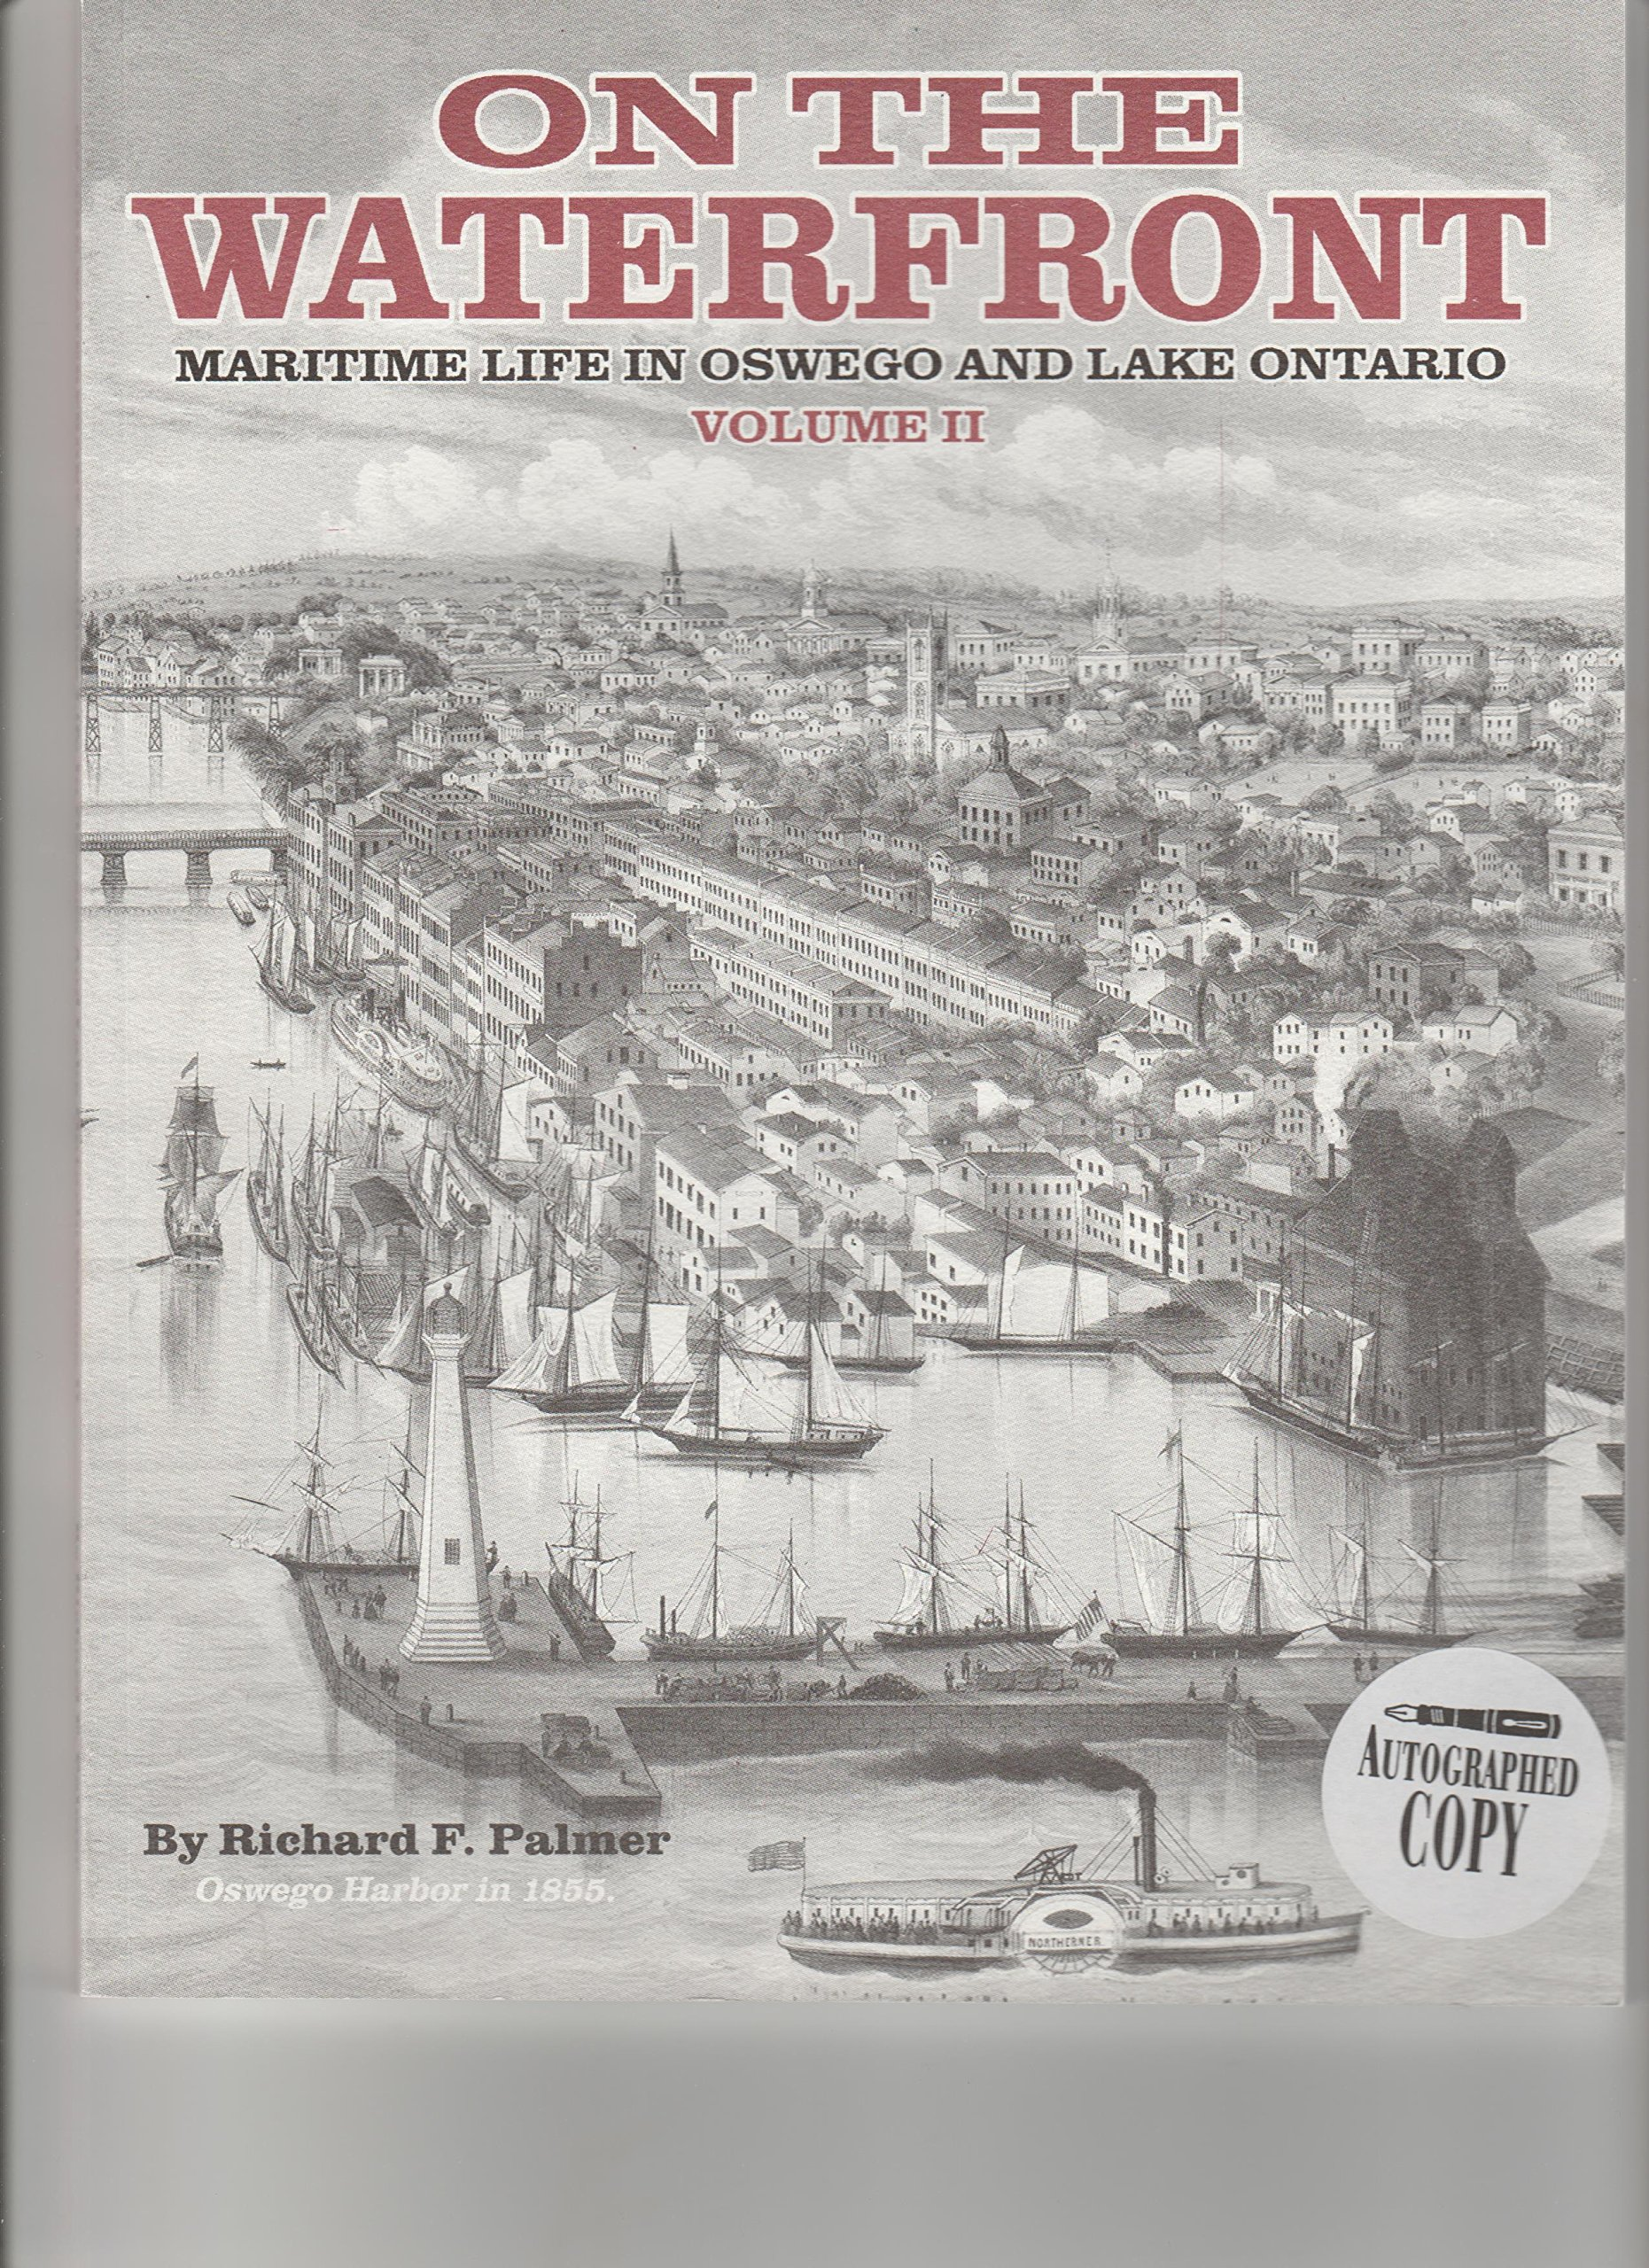 On the Waterfront: Maritime Life in Oswego and Lake Ontario Volume II PDF